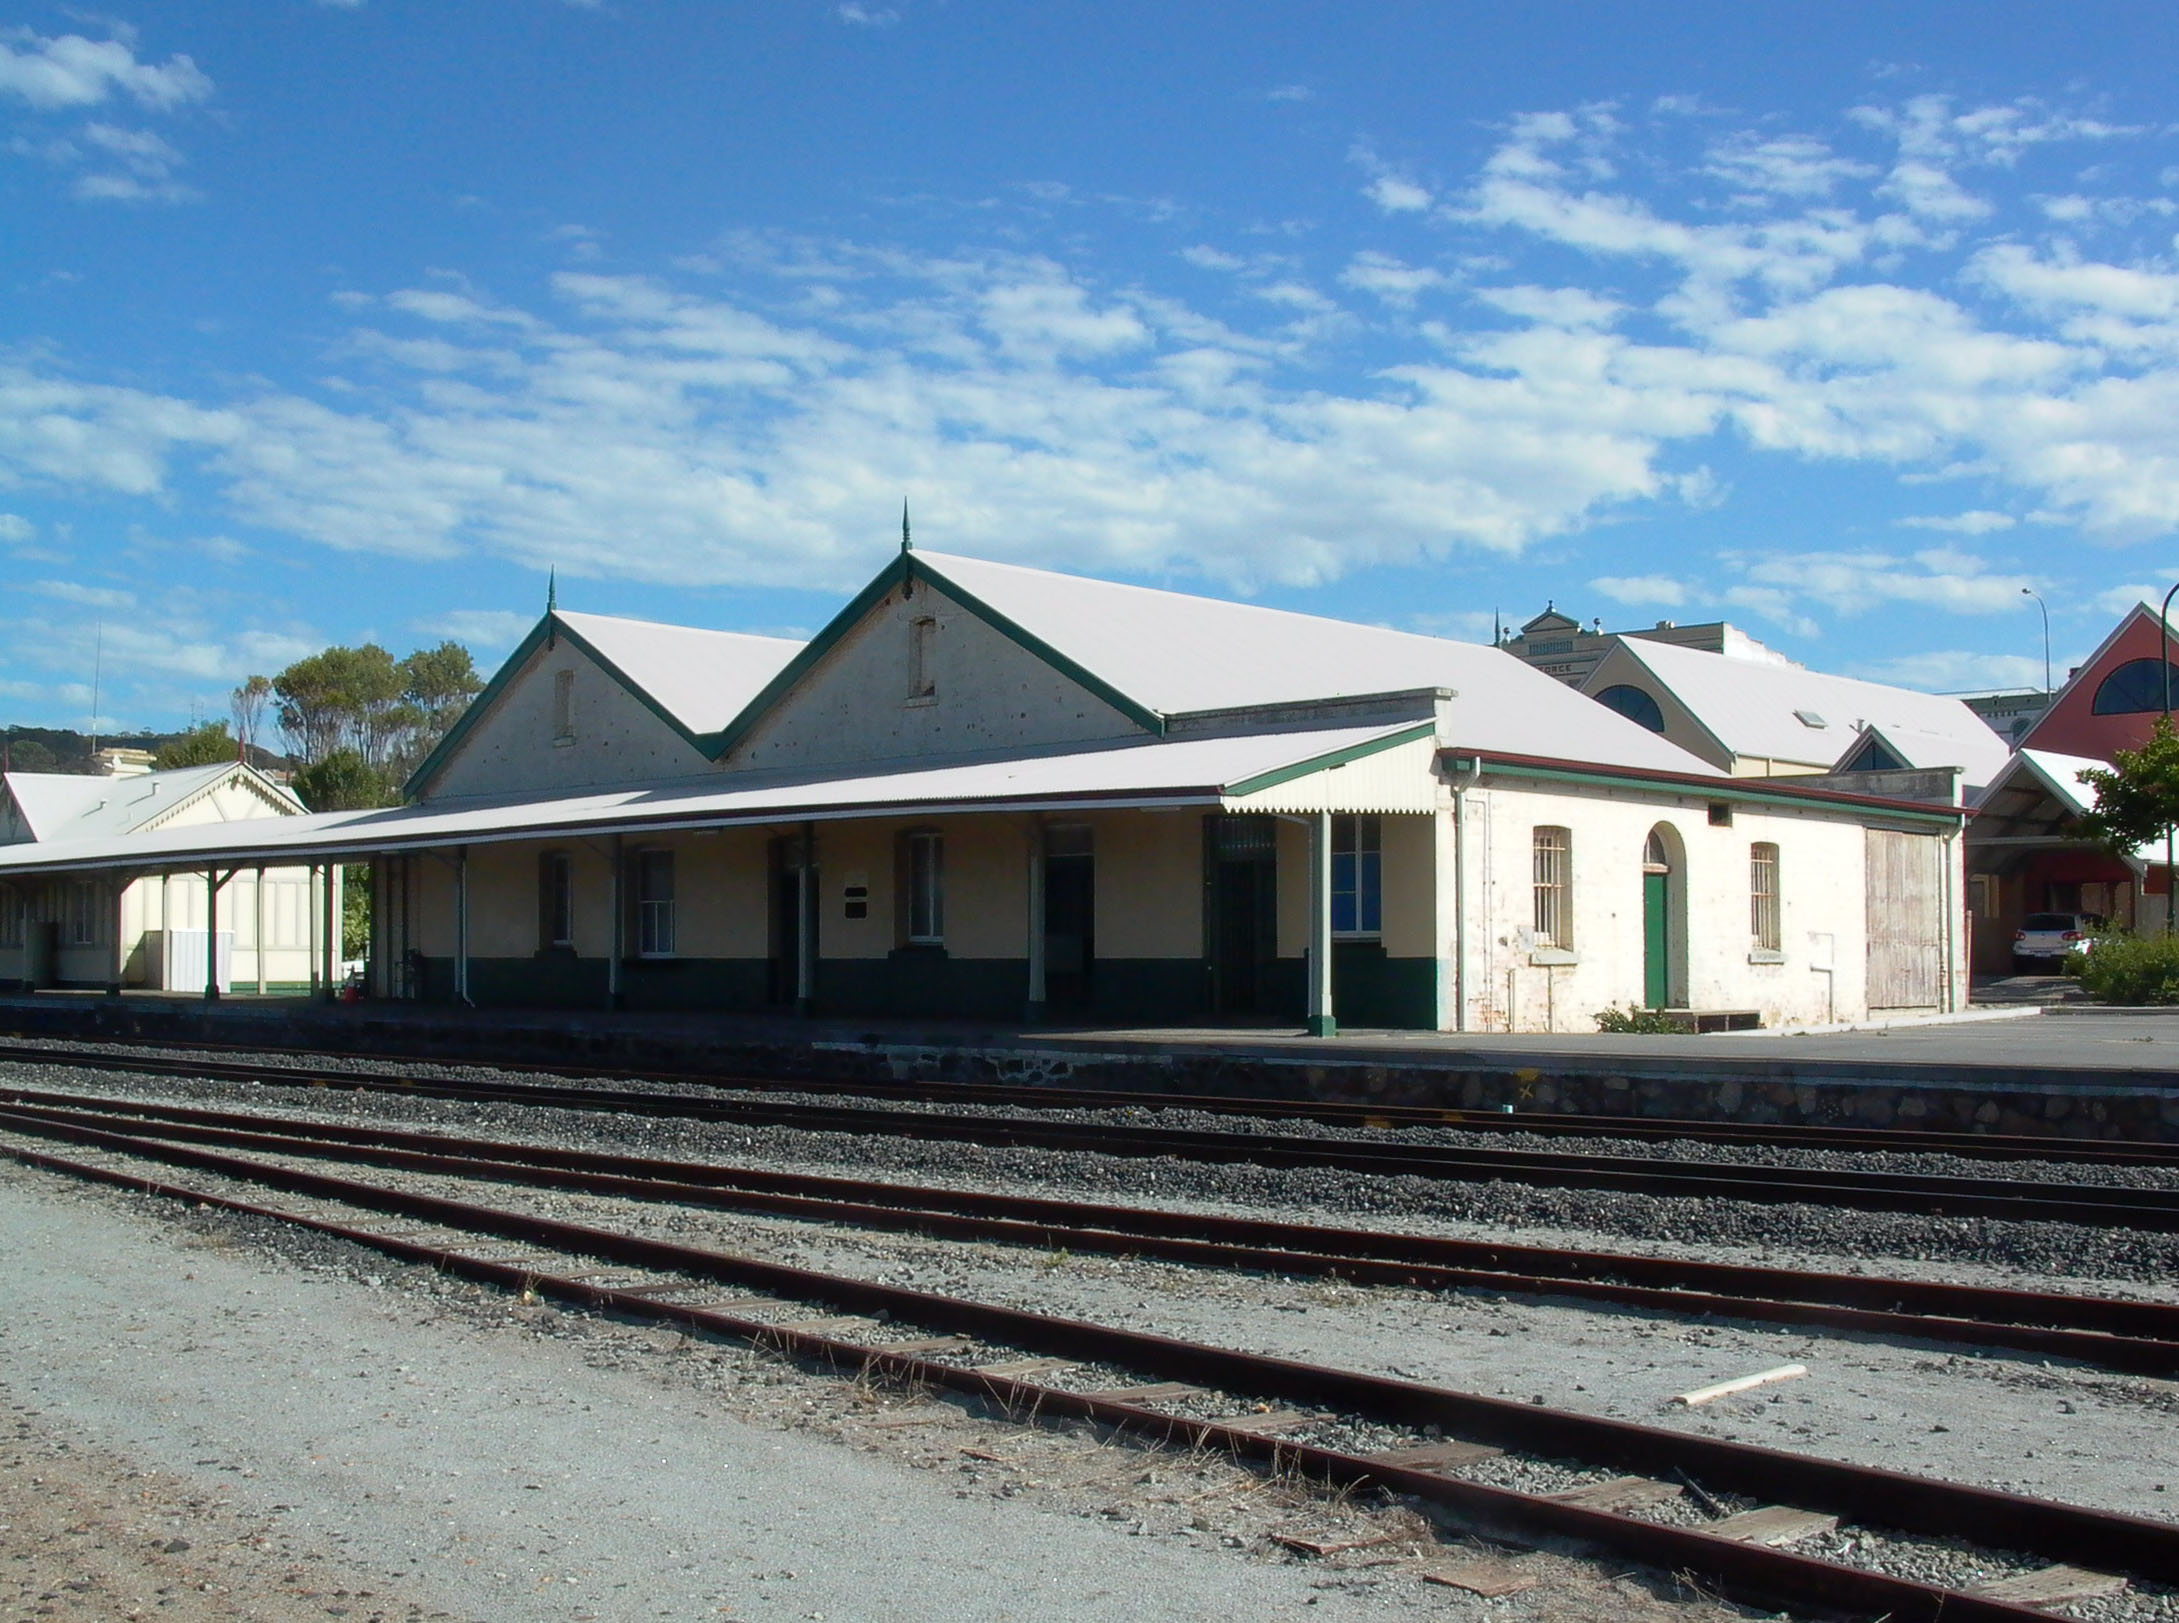 Railway store from South East